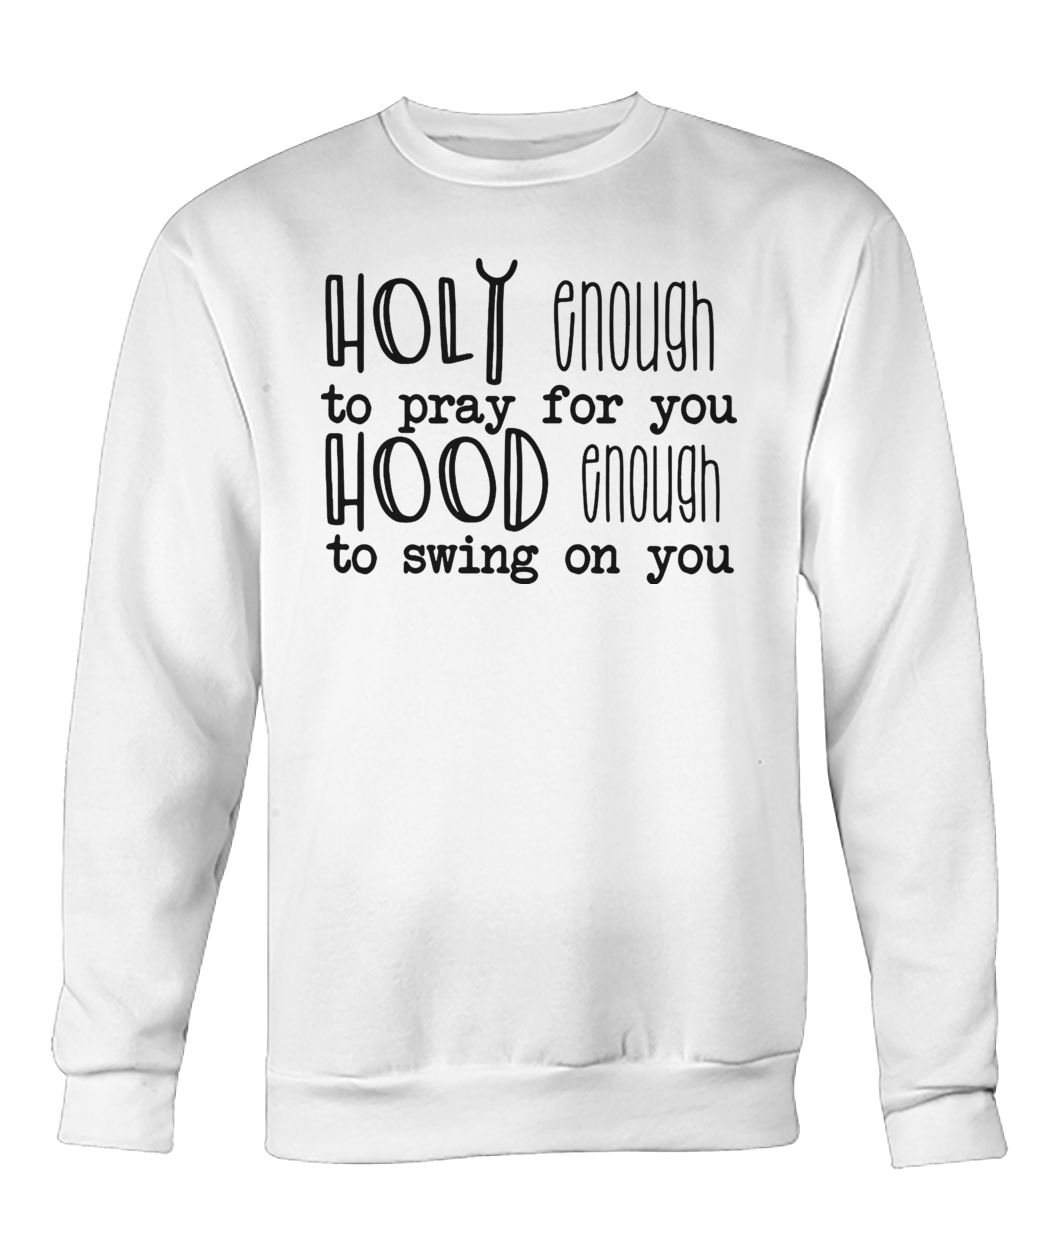 Holy enough to pray for you hood enough to swing on you crew neck sweatshirt